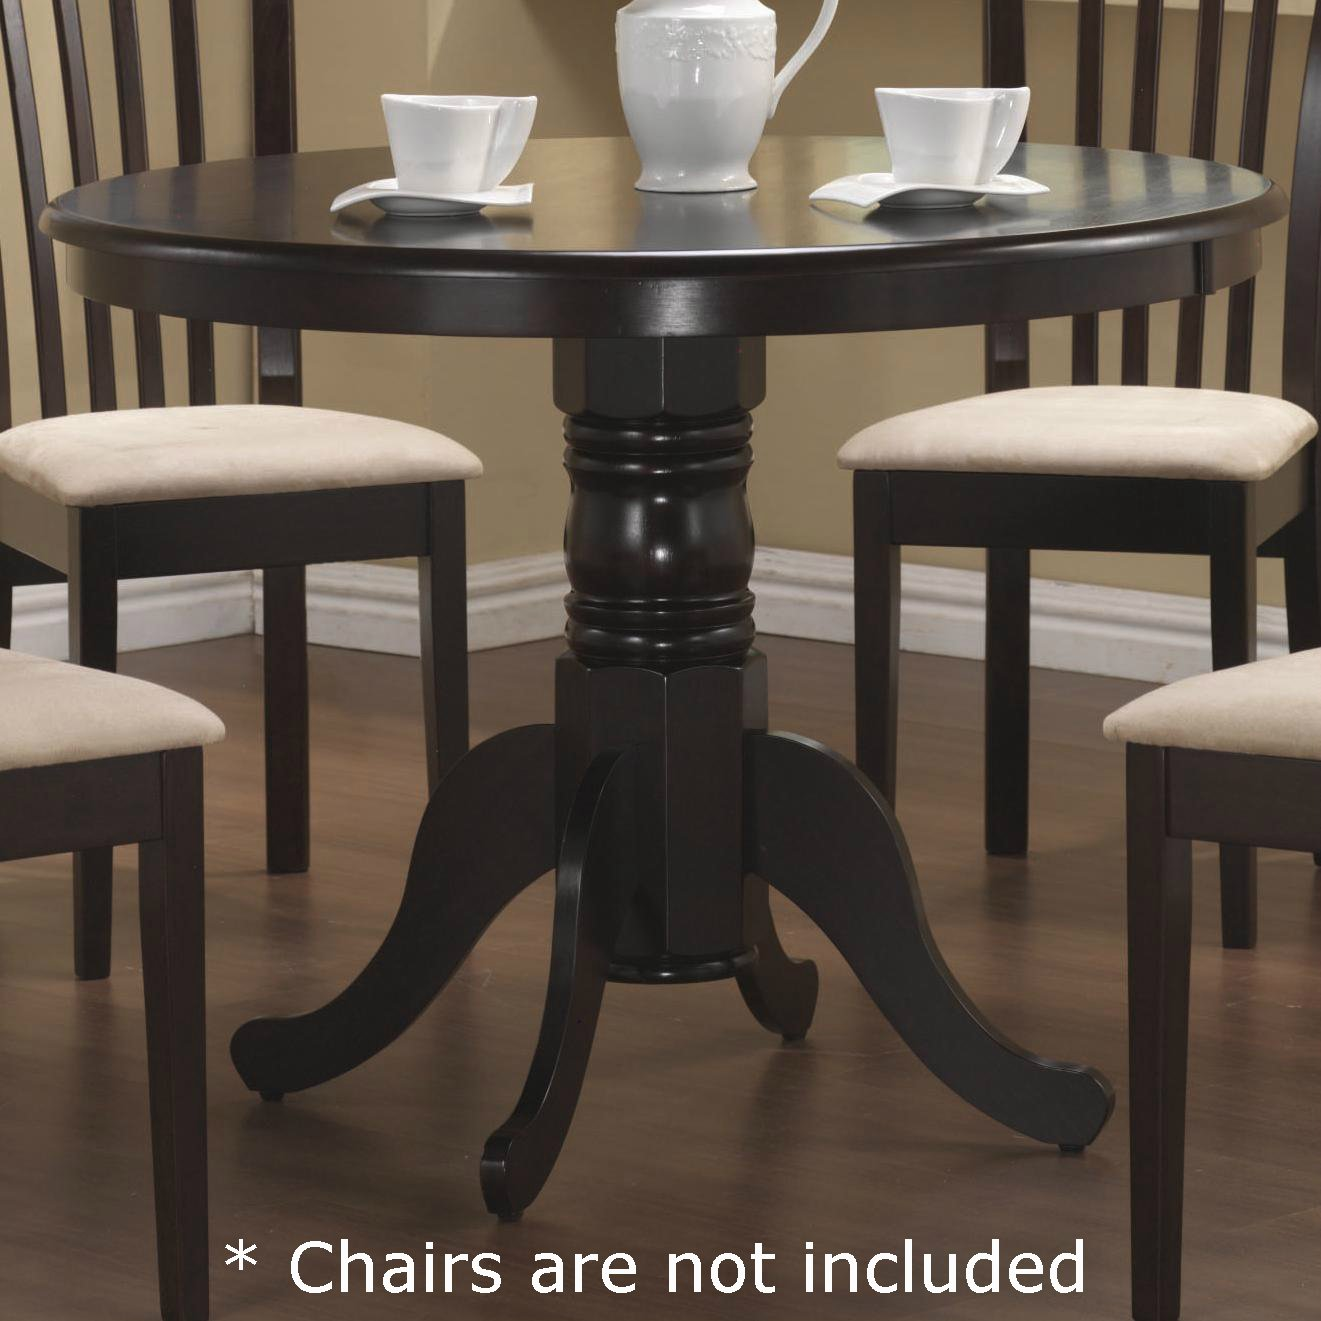 Coaster Pedestal Round Dining Table Cappuccino Finish by Coaster Home Furnishings (Image #1)